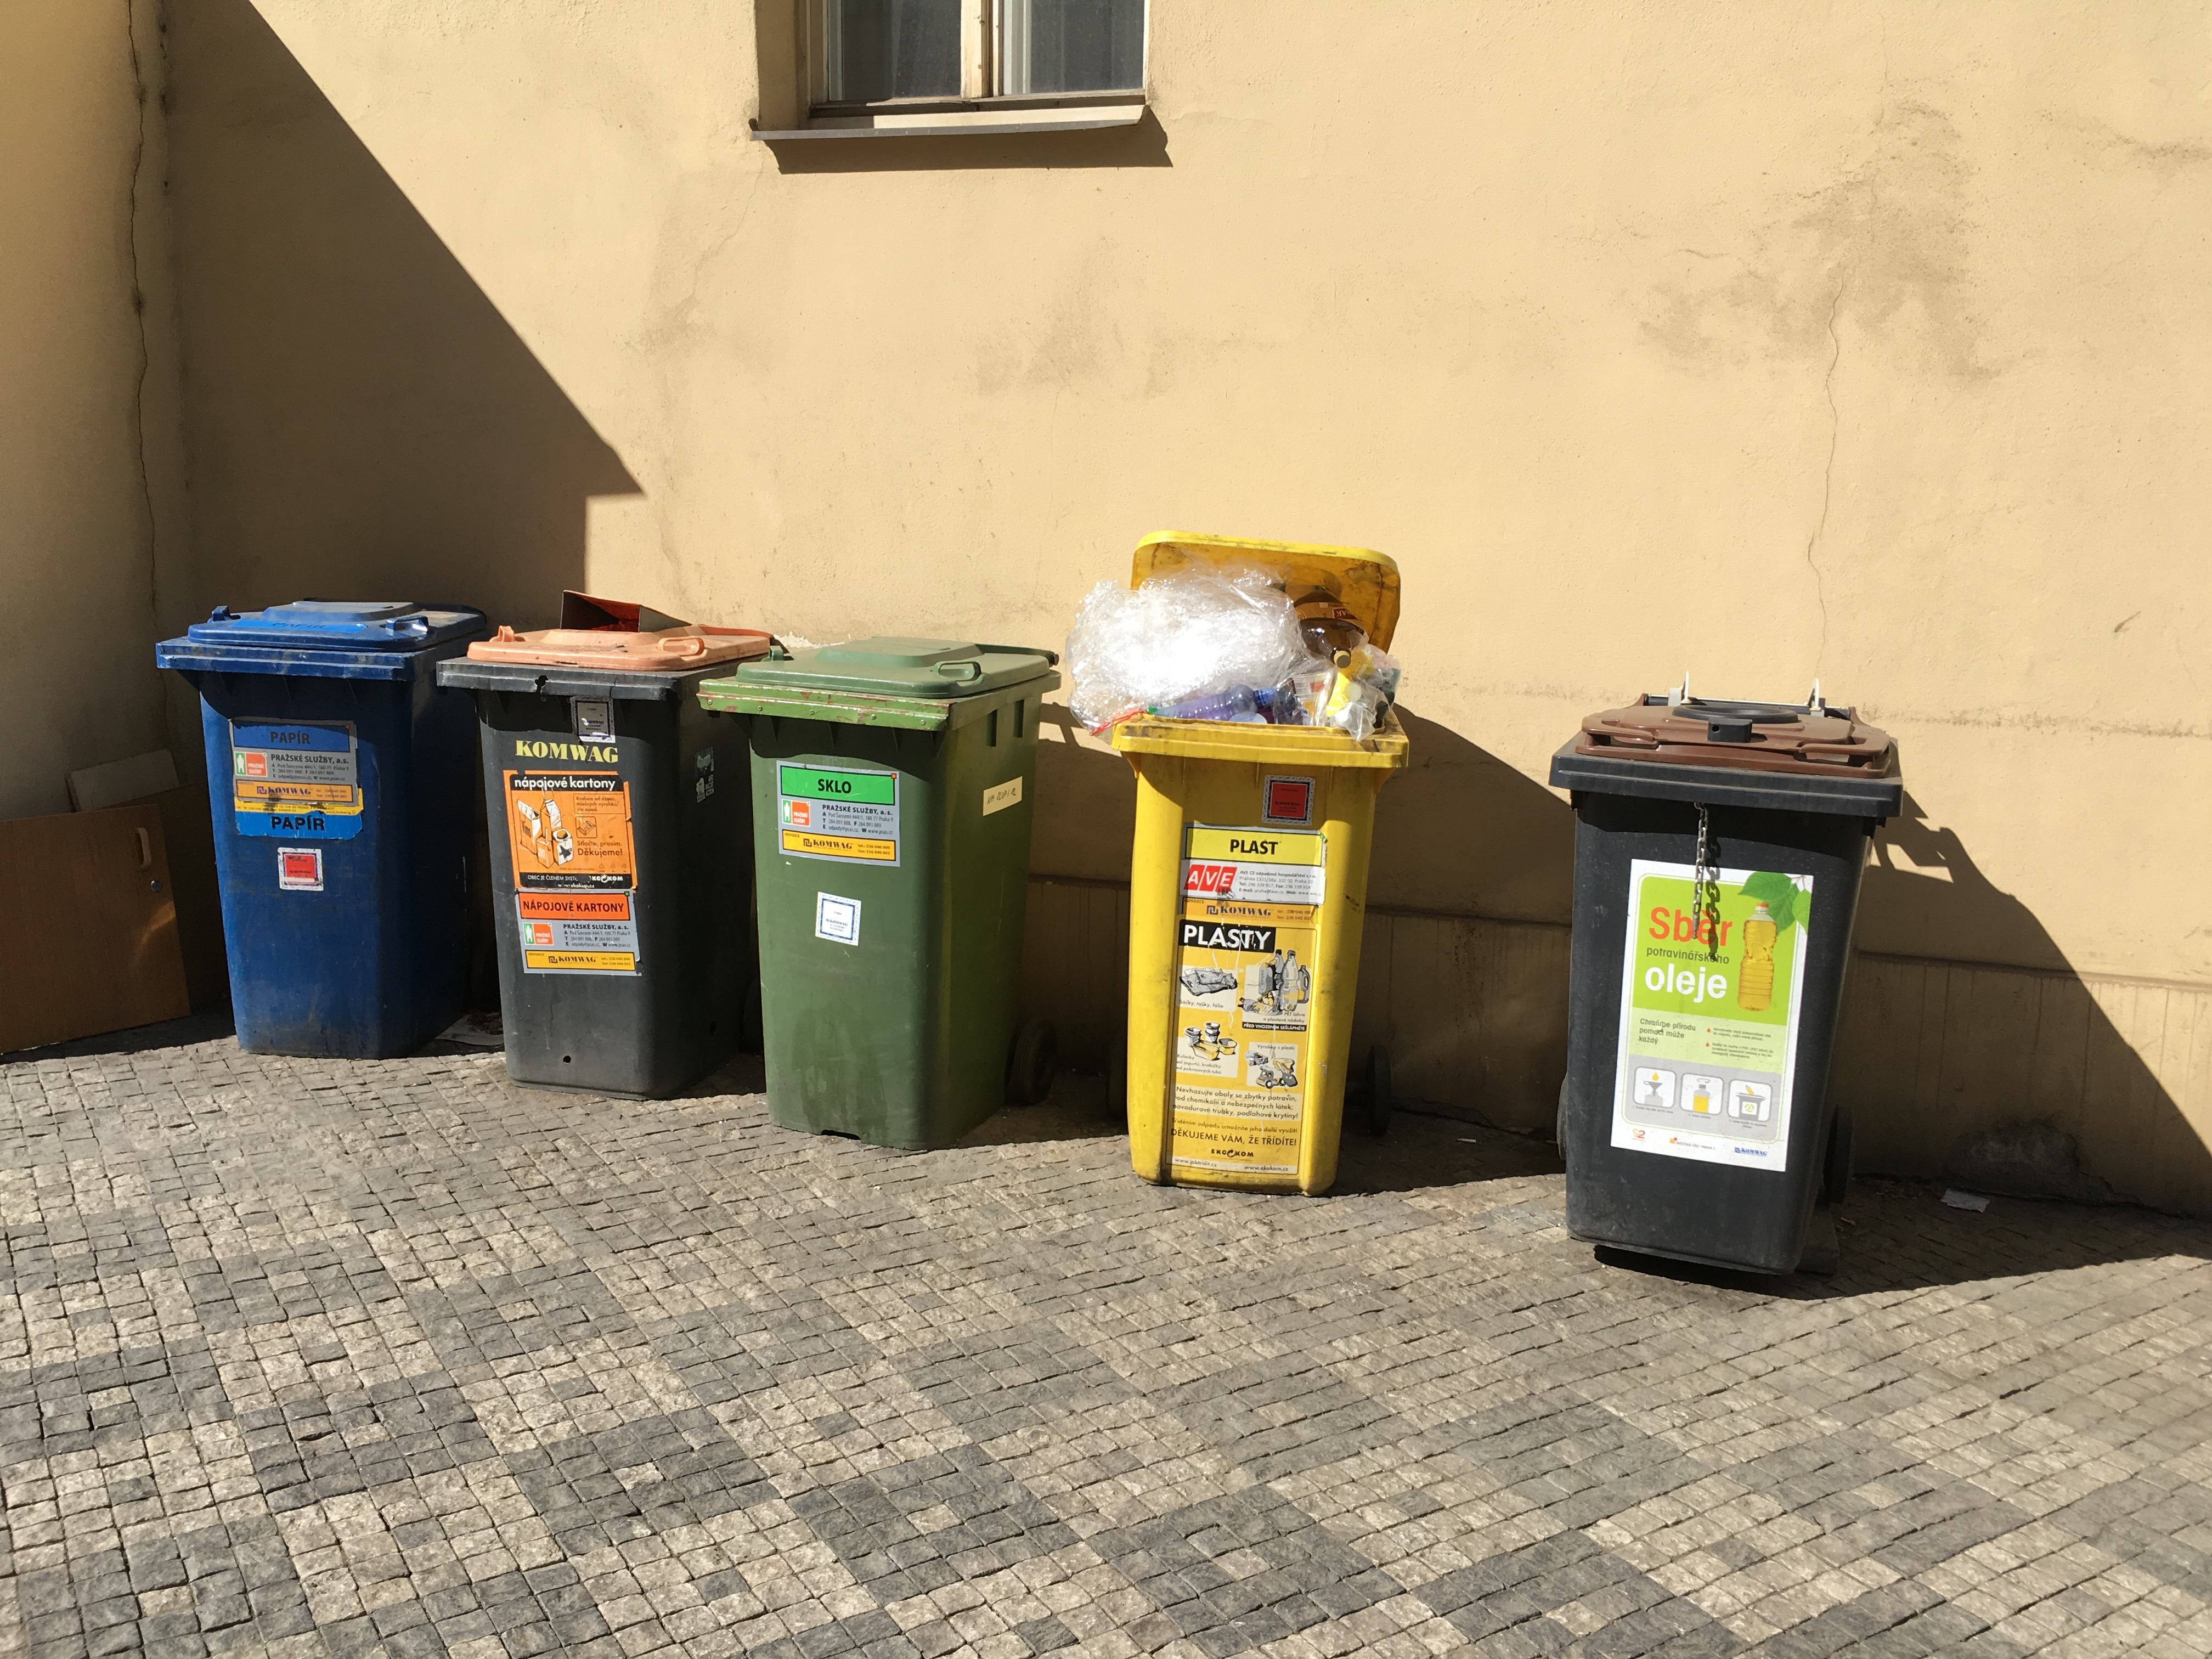 Popular Science: Judging people by their dustbins